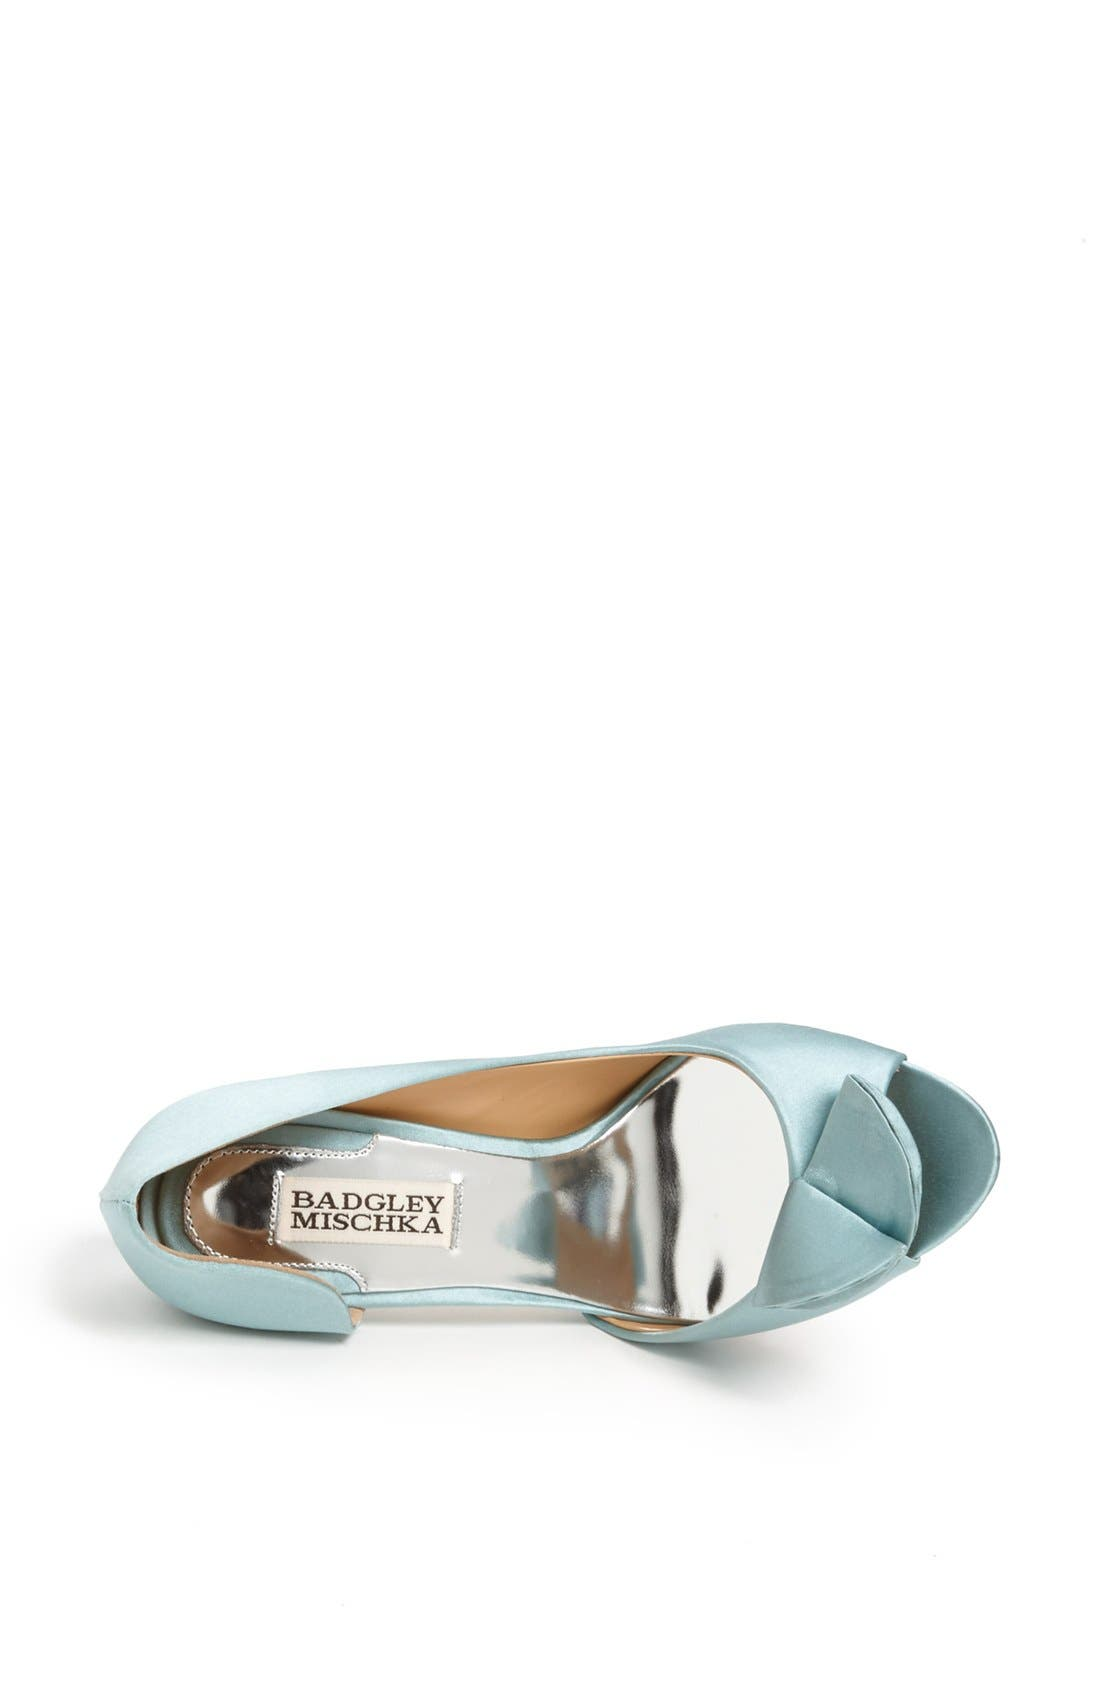 Alternate Image 3  - Badgley Mischka 'Tarian' Pump